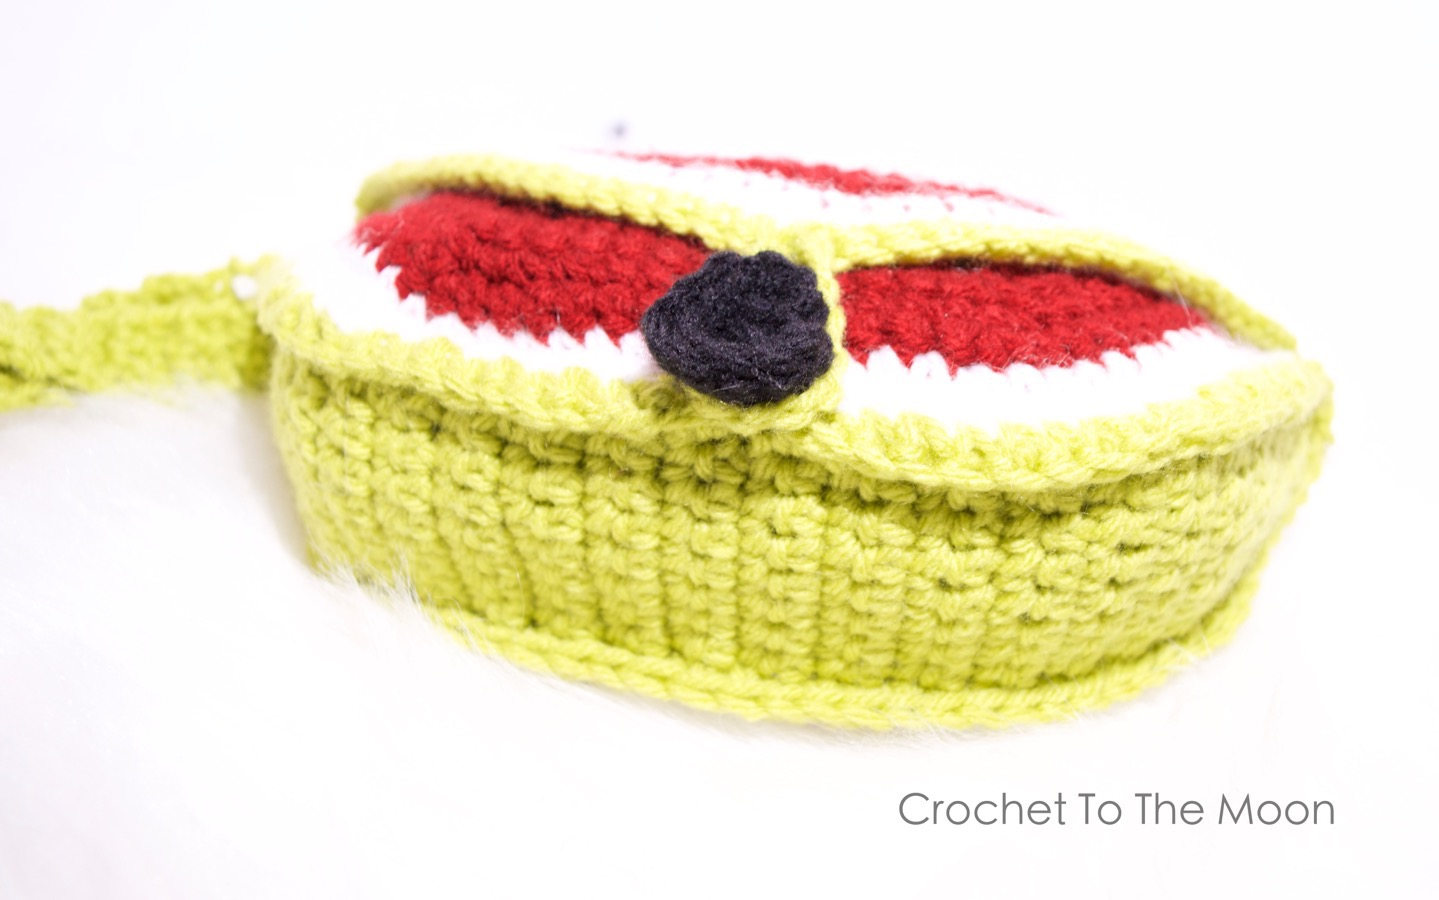 Creative Bug Eat Your Fruits and Veggies - Crochet To The